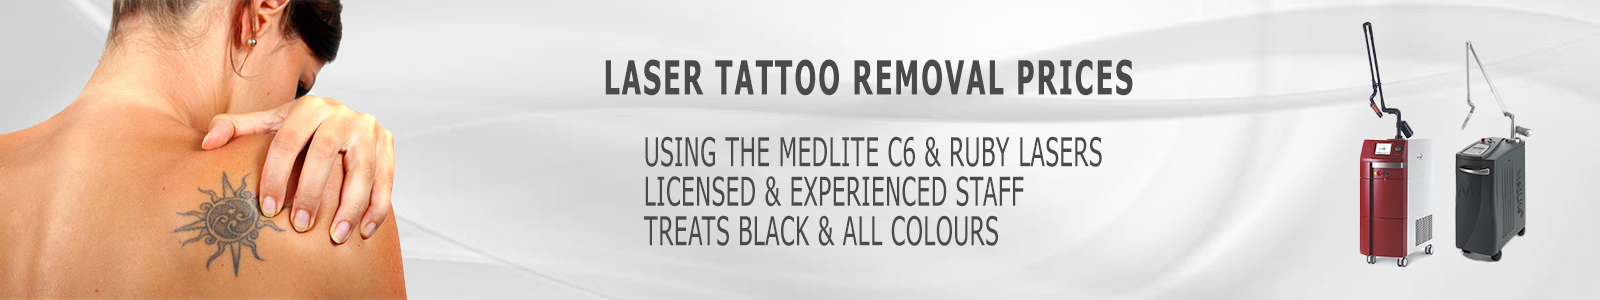 Laser Tattoo Removal Prices